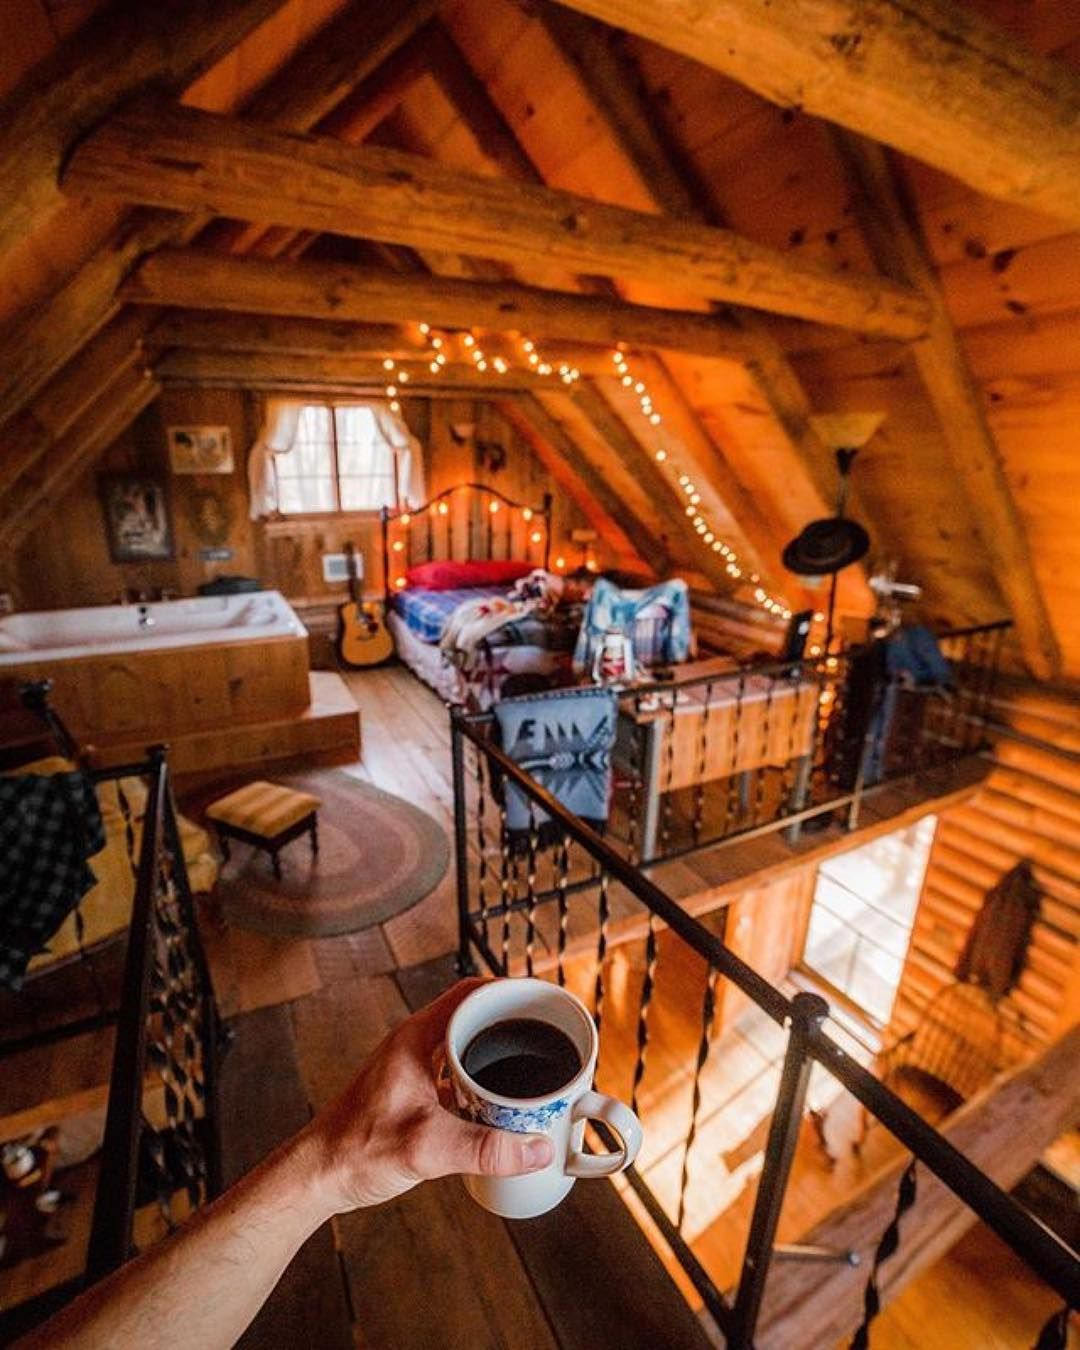 Cozy Cabin Hygge Wonderlustcollective V Instagram Every